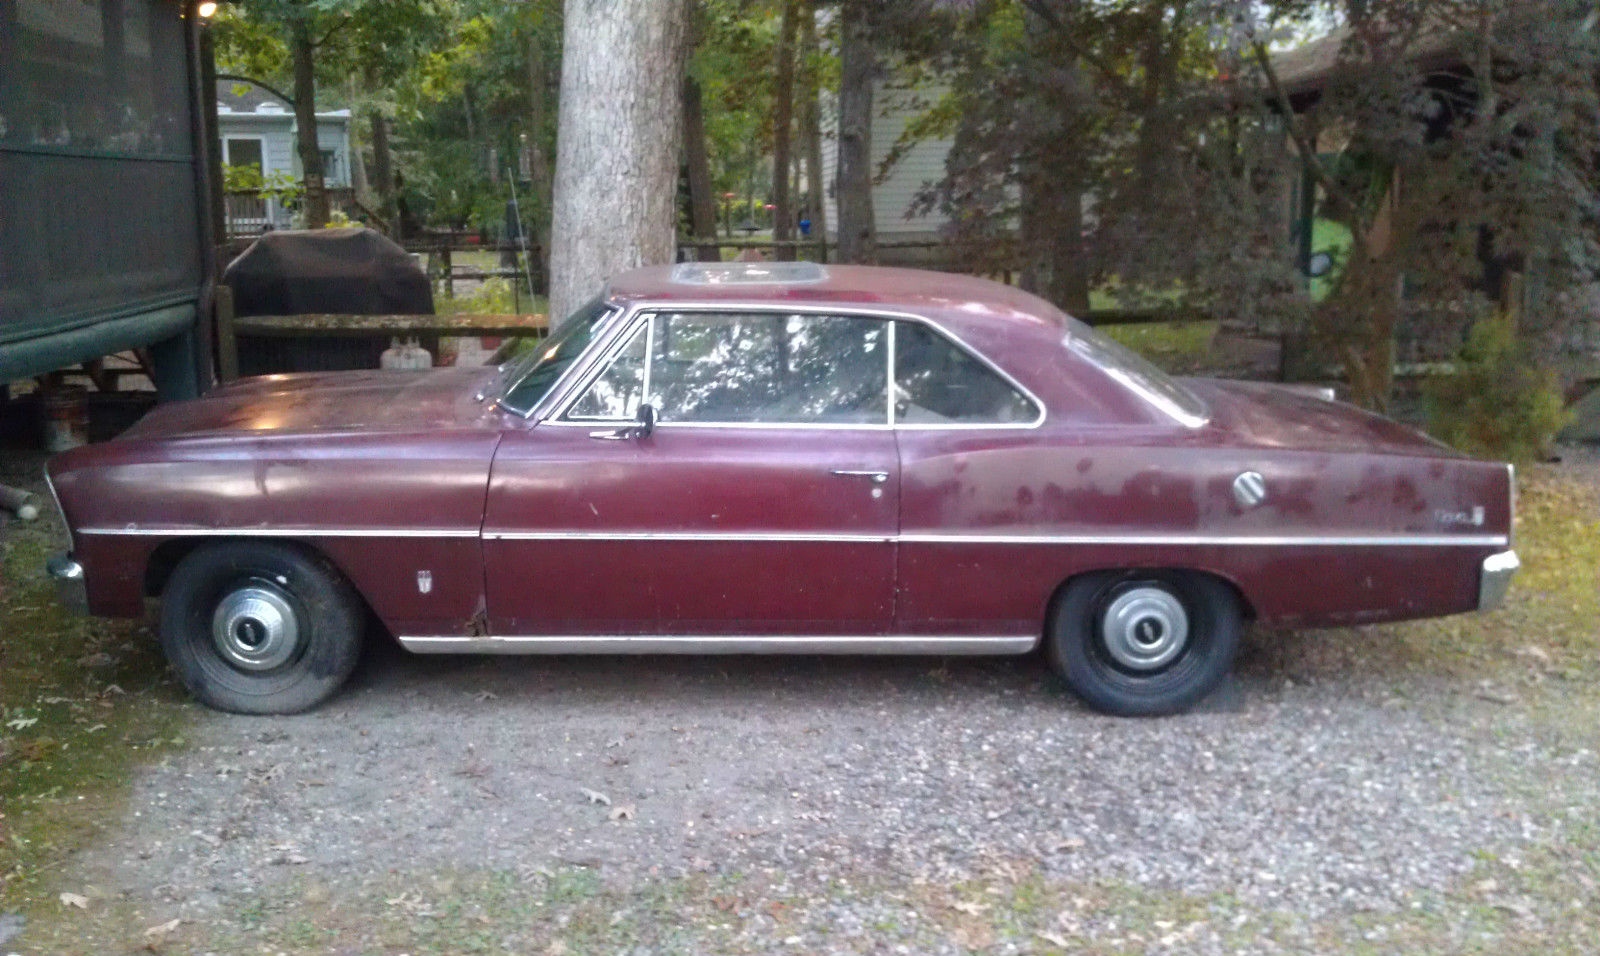 66 Nova L79 Replica Project Wow 15 Picts Added Classic Chevrolet Nova 1966 For Sale